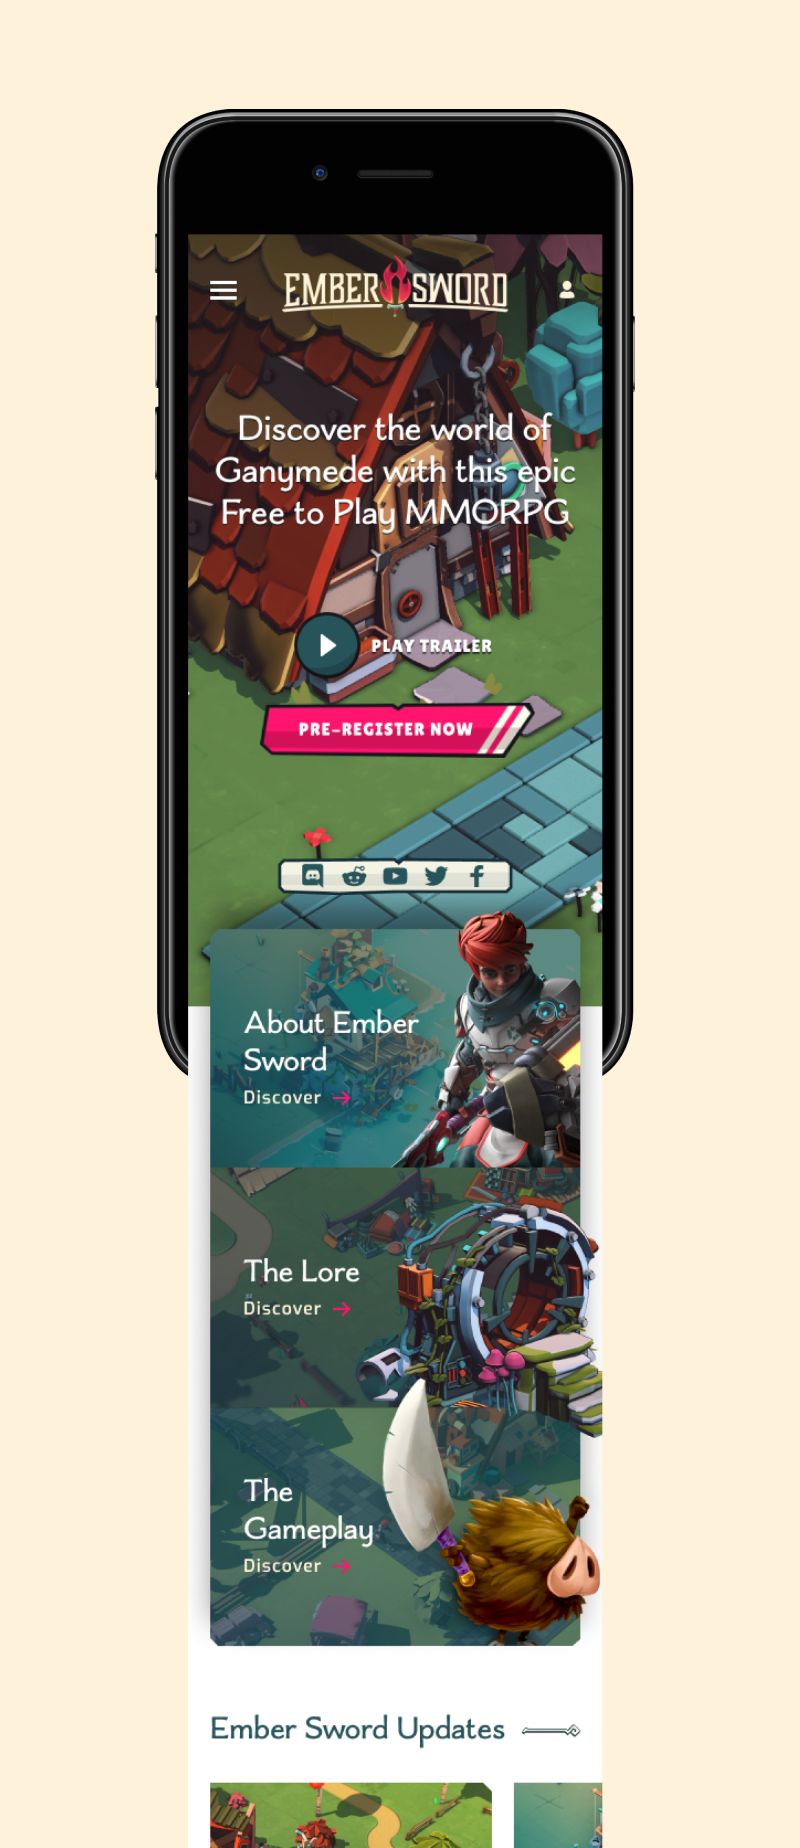 Ember Sword mobile homepage UI design